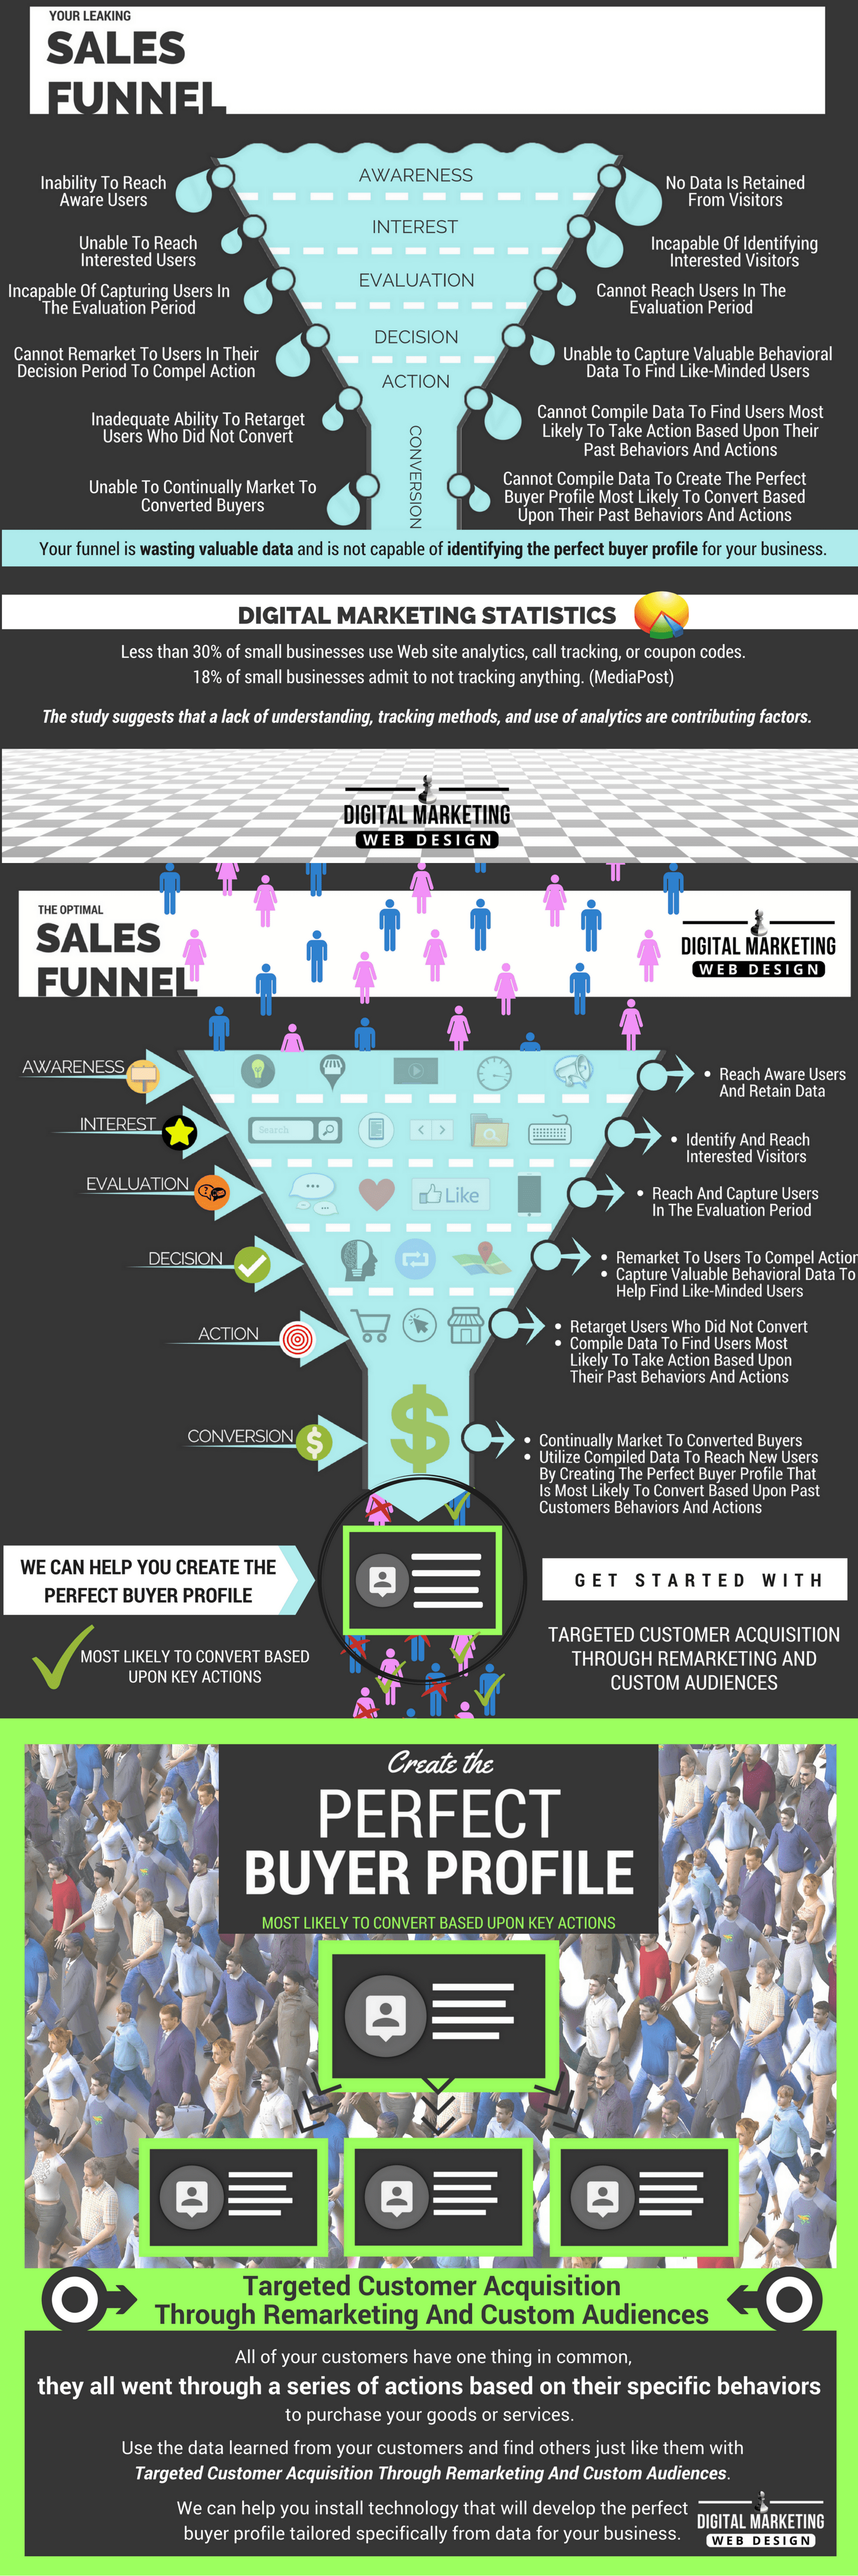 Your Leaking Online Sales Funnel - Targeted Customer Acquisition Through Remarketing and Custom Audiences